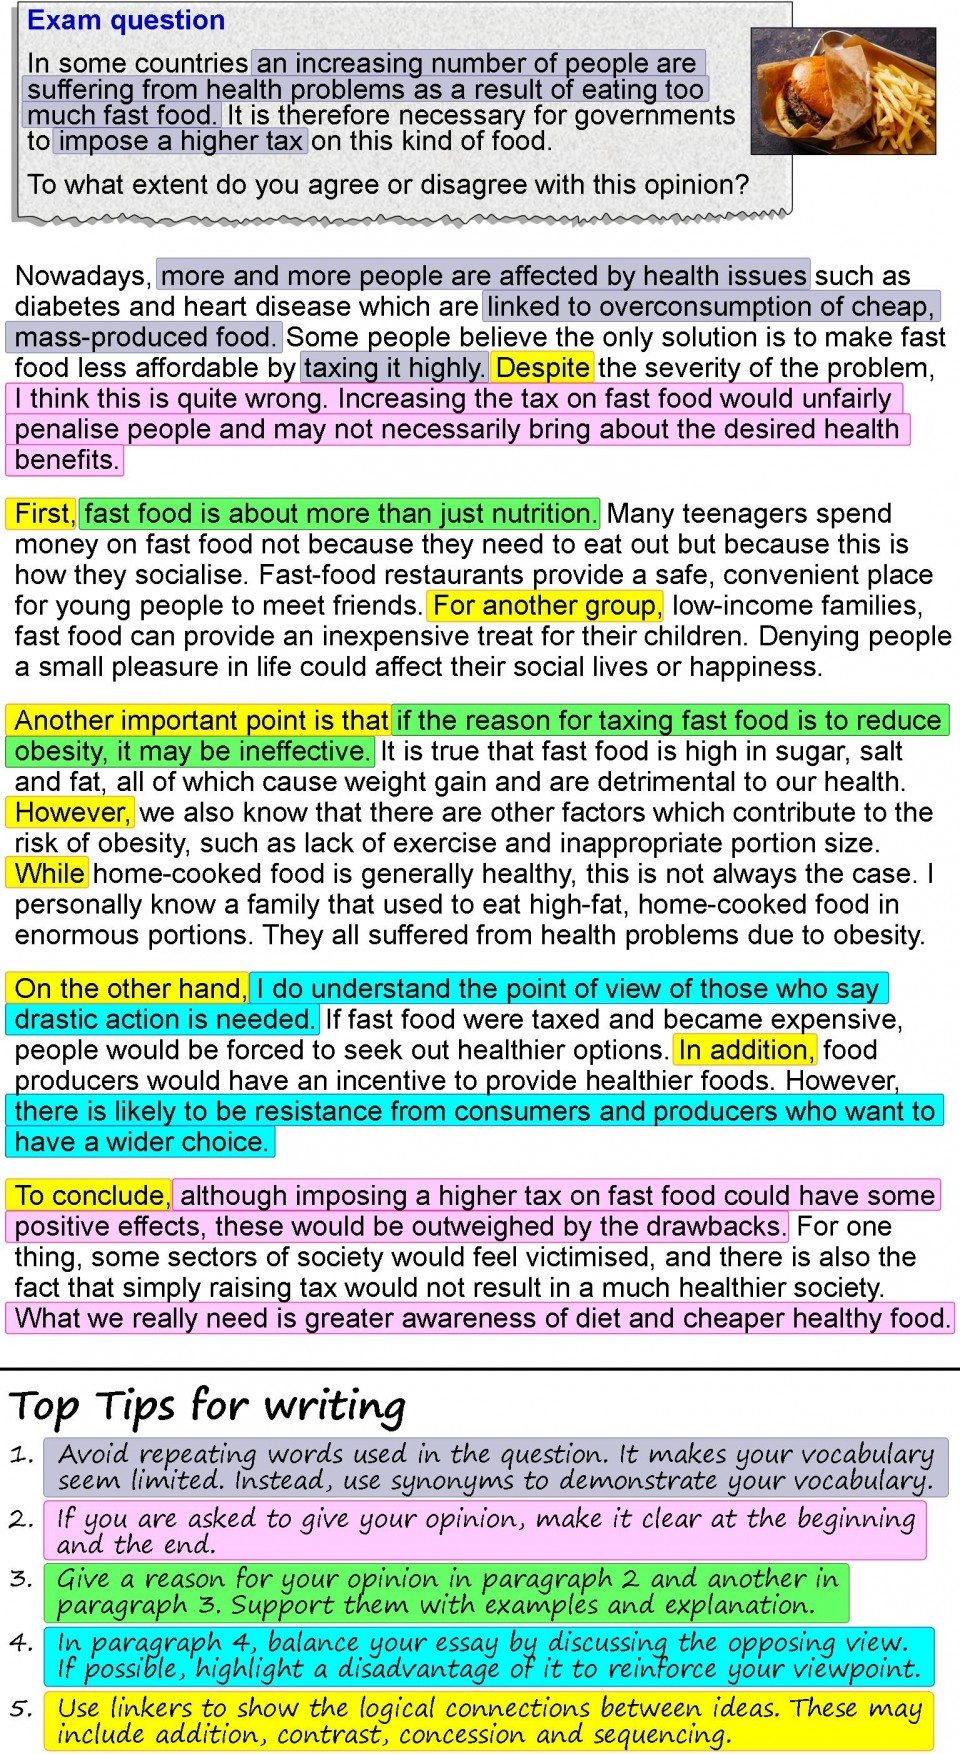 001 Opinion Essay About Fast Food Example An 4 Unbelievable Restaurants Short 960